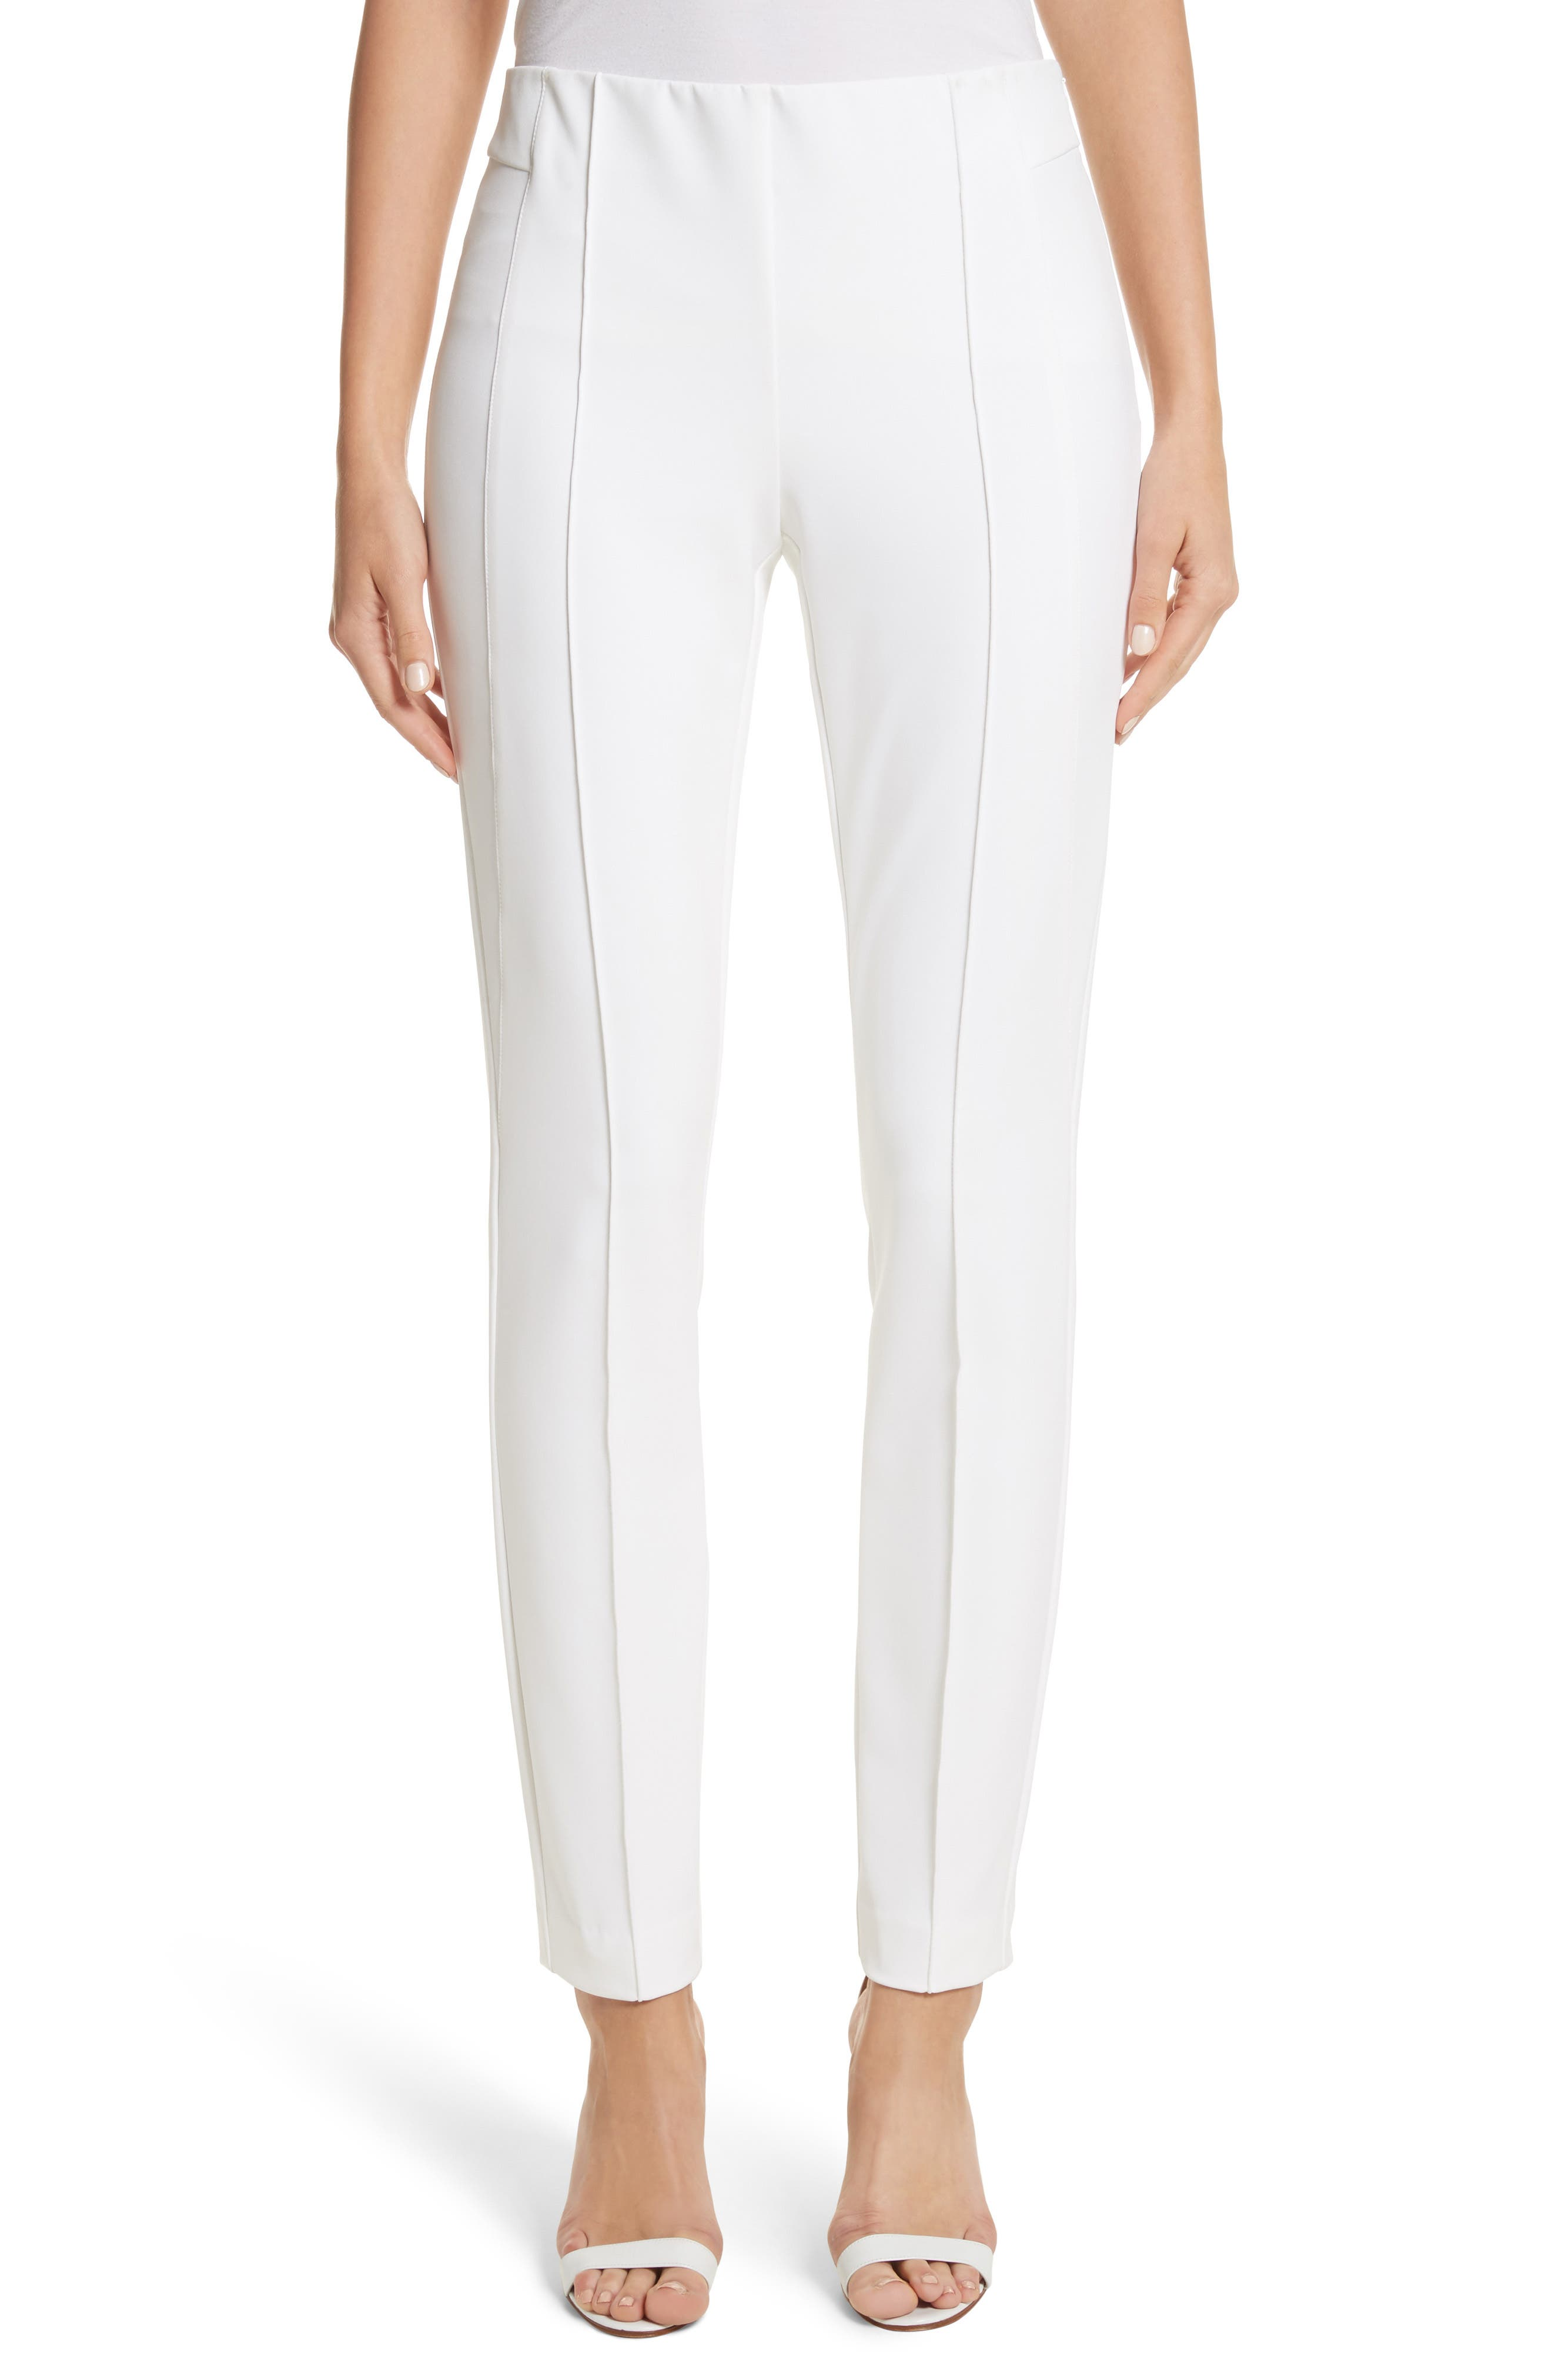 'Gramercy' Acclaimed Stretch Pants,                             Main thumbnail 1, color,                             WHITE